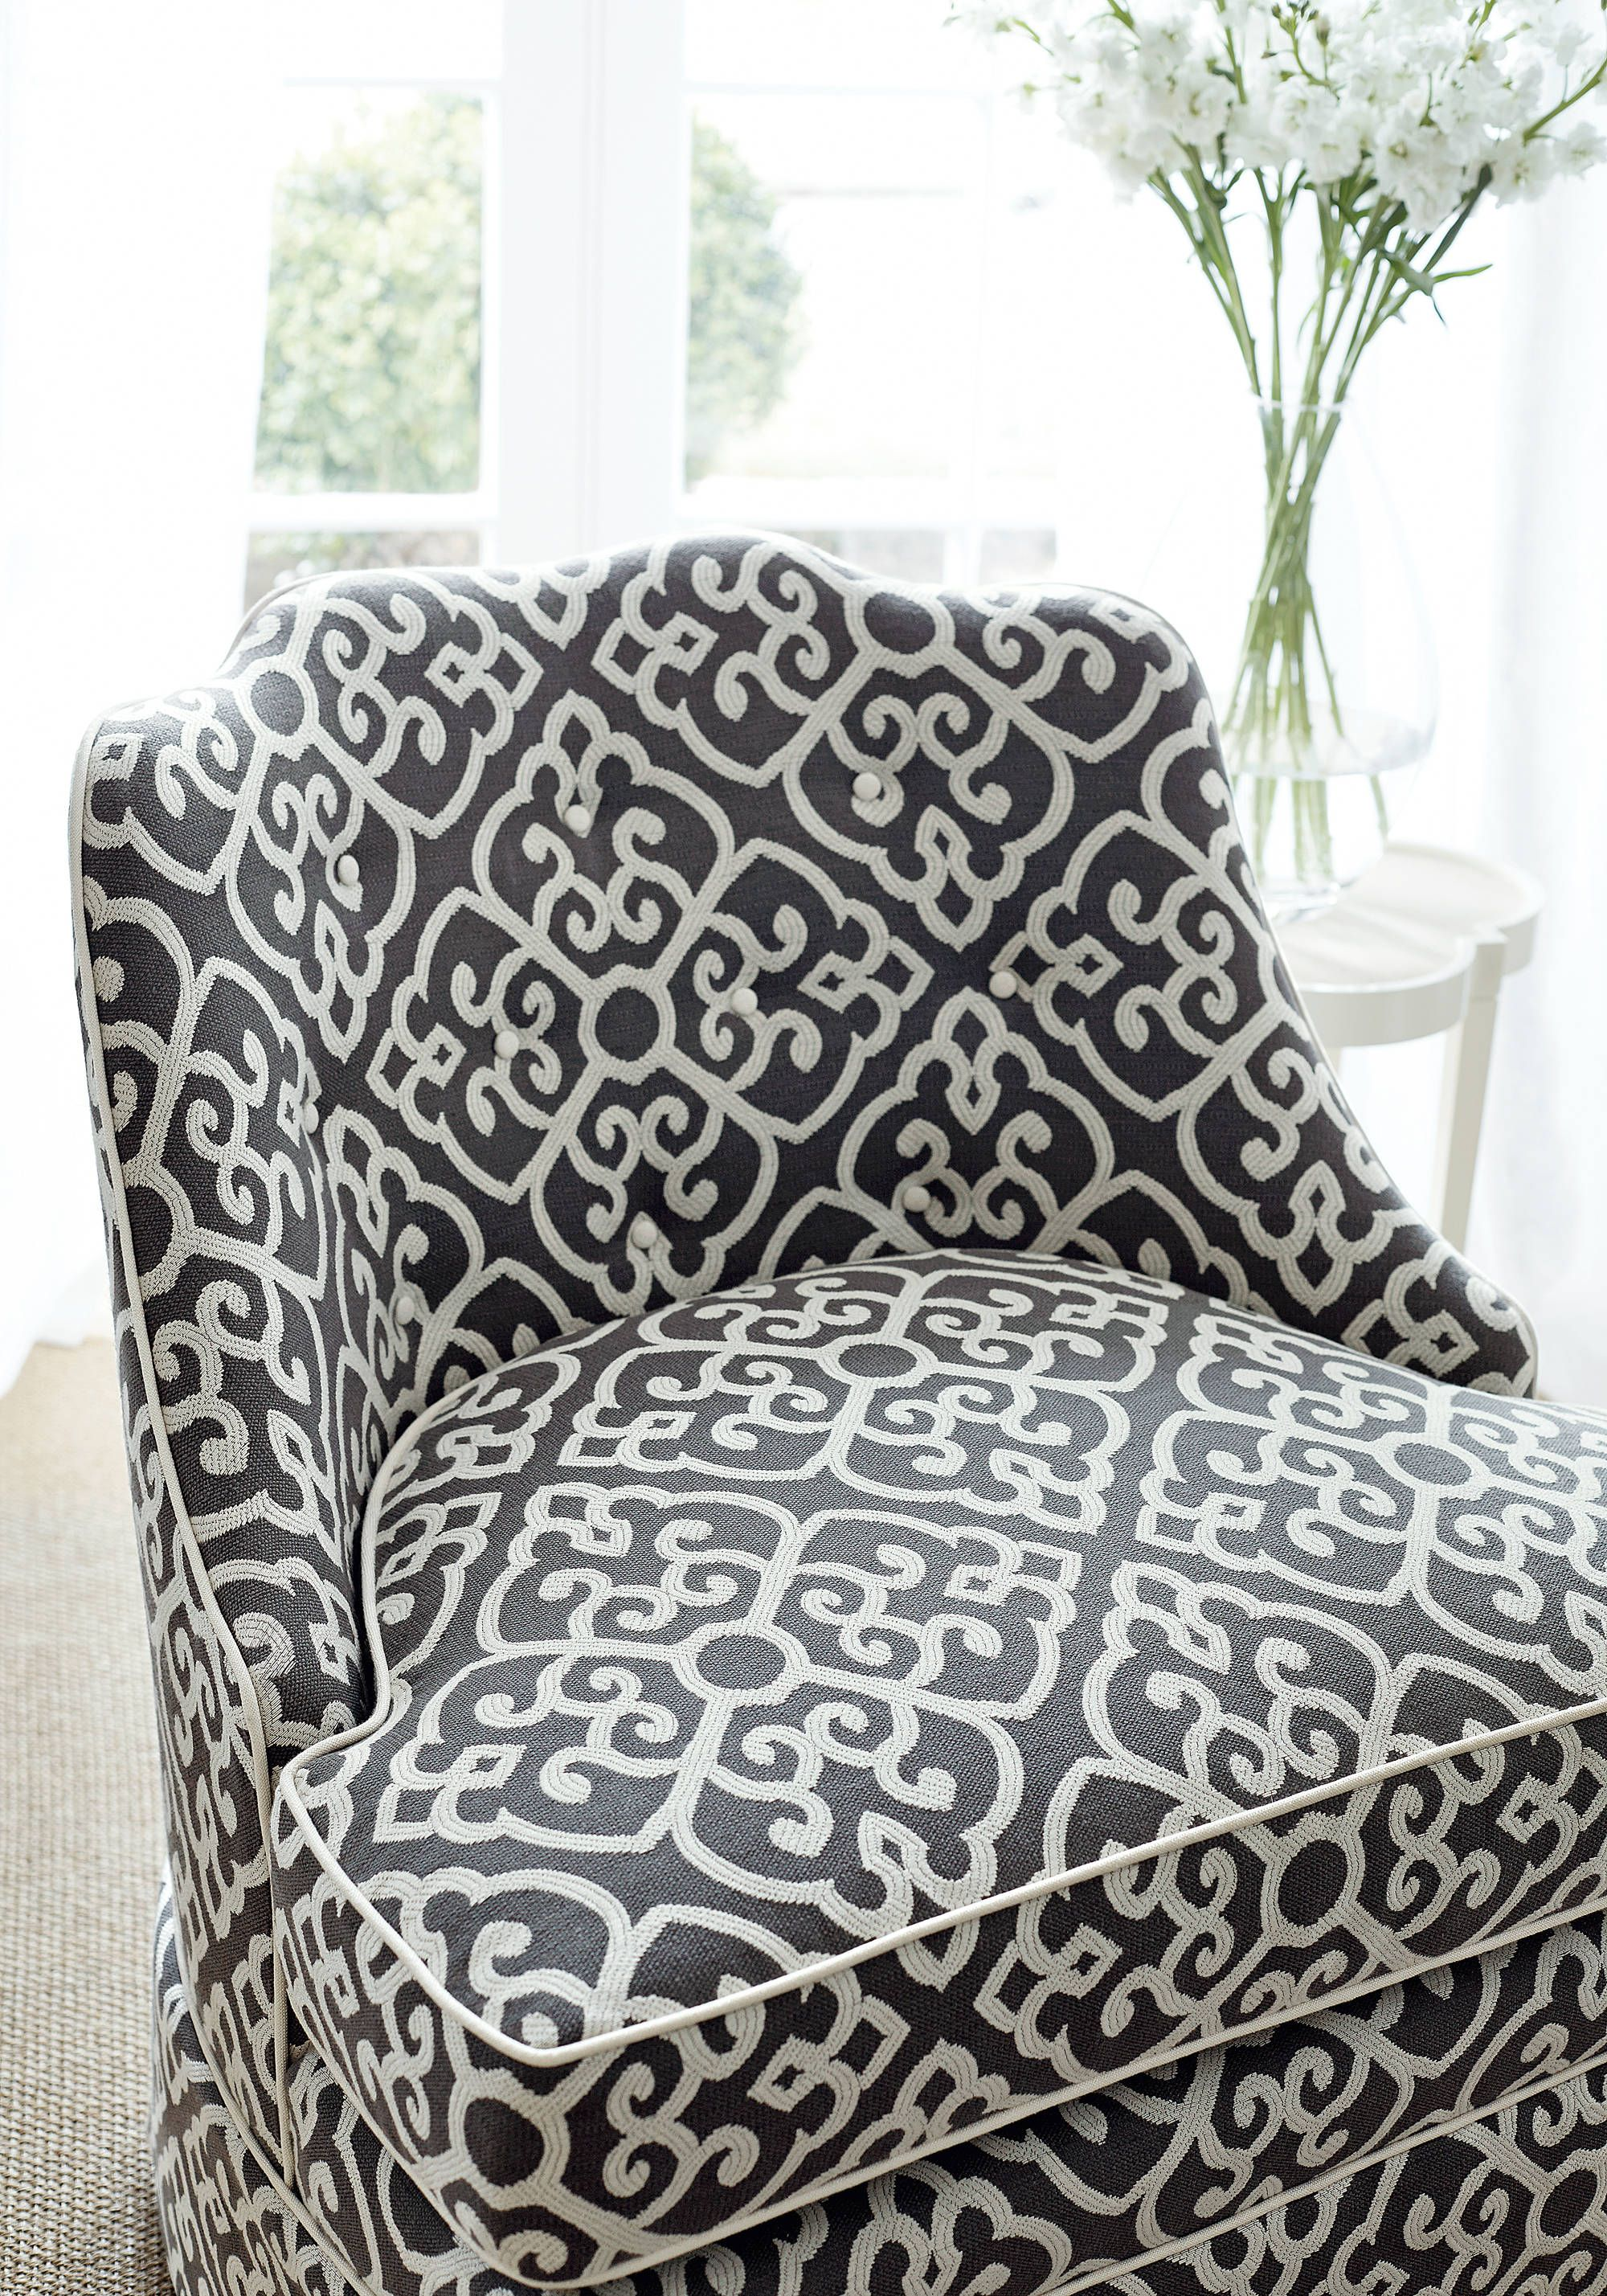 brentwood chair. Brentwood Chair From Thibaut Fine Furniture With Skirt In Shoji Woven Fabric Charcoal